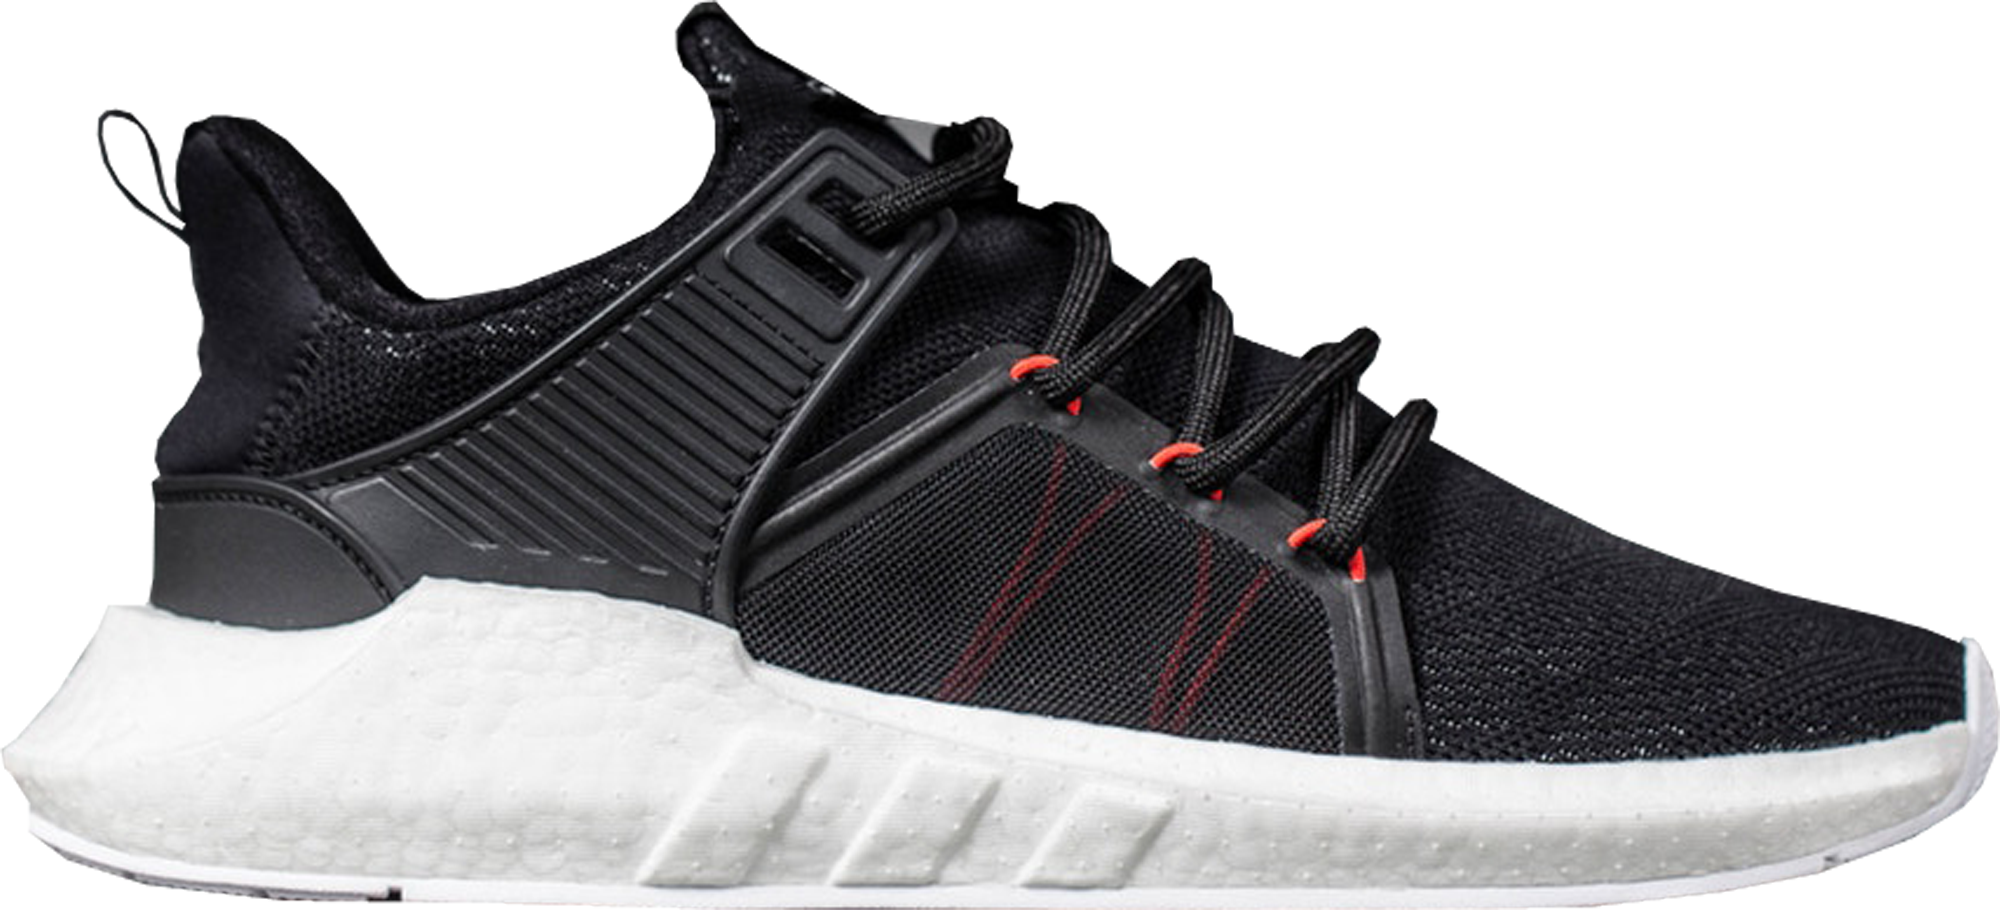 adidas EQT Support Future Bait R&D Black